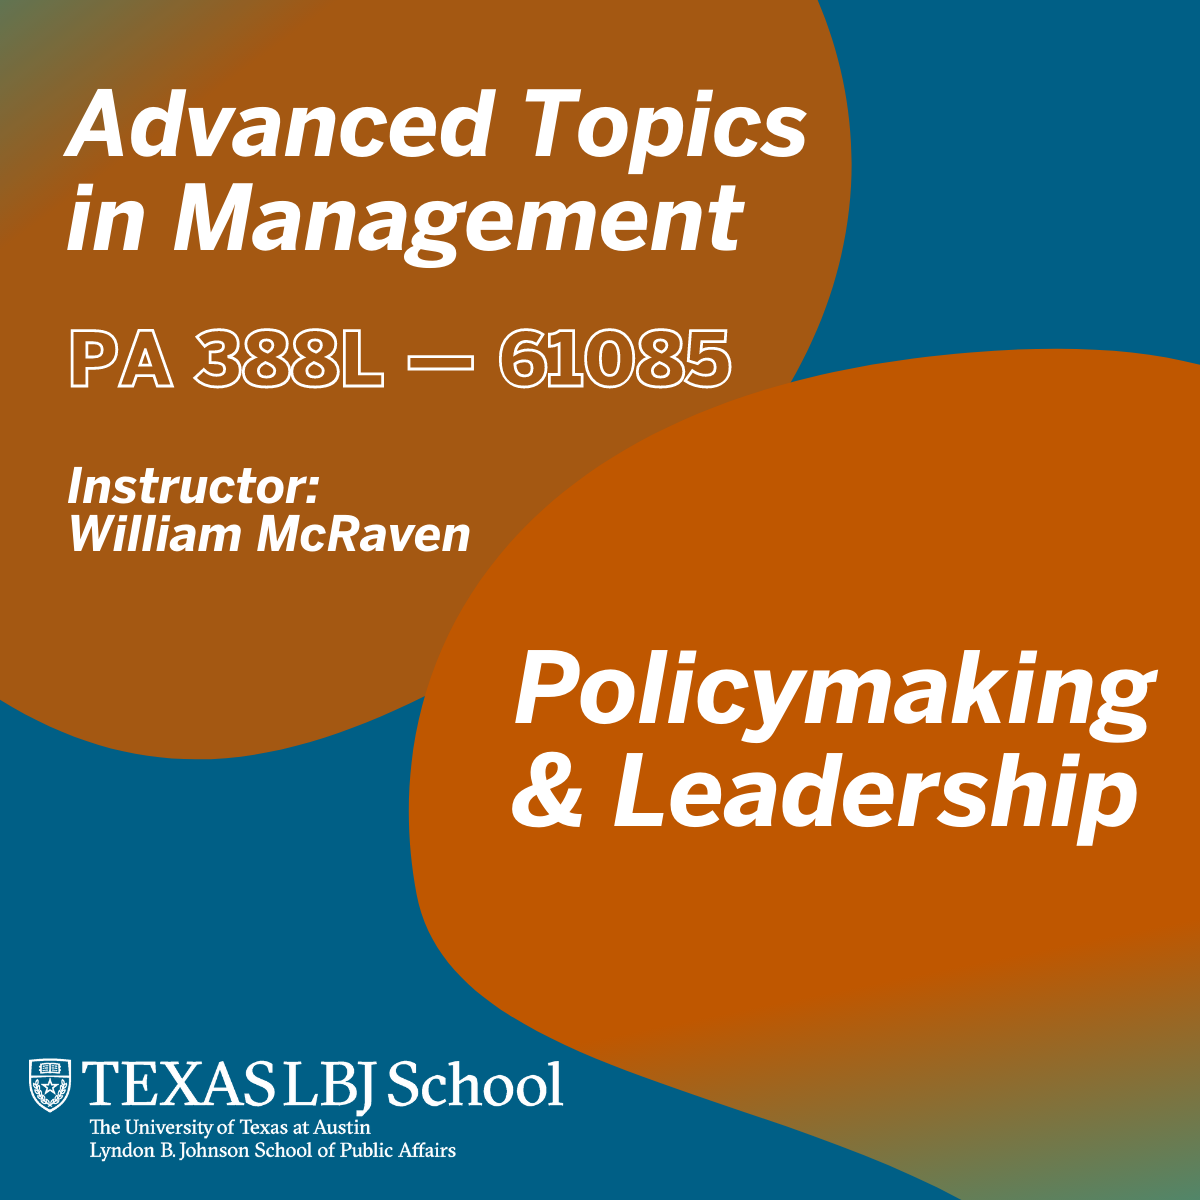 Fall 2021 class: Advanced Topics in Management: Policymaking & Leadership